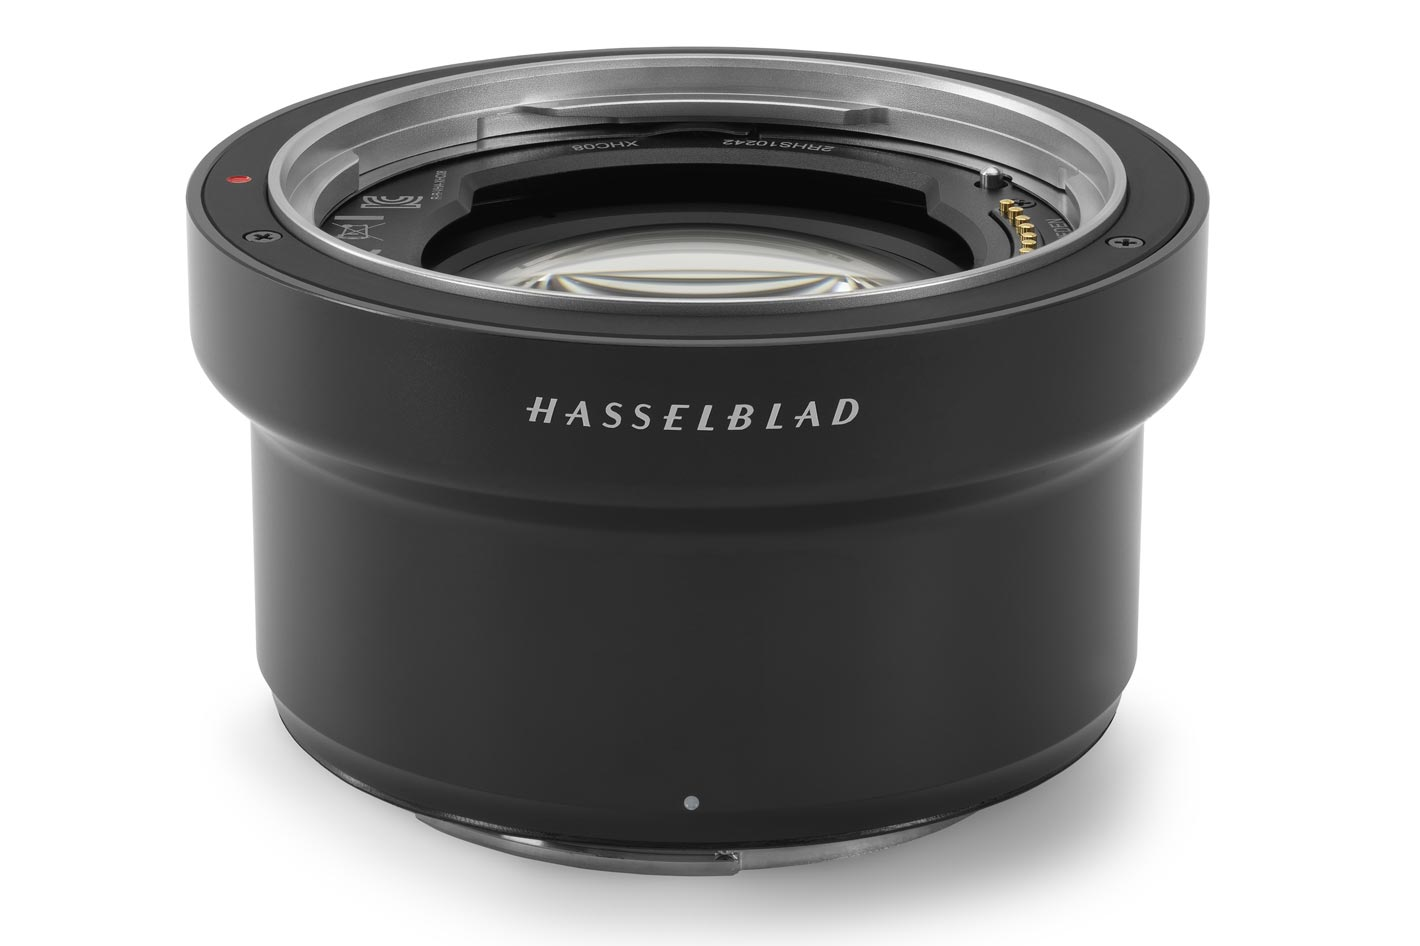 Hasselblad reveals new XH Converter to reduce focal length